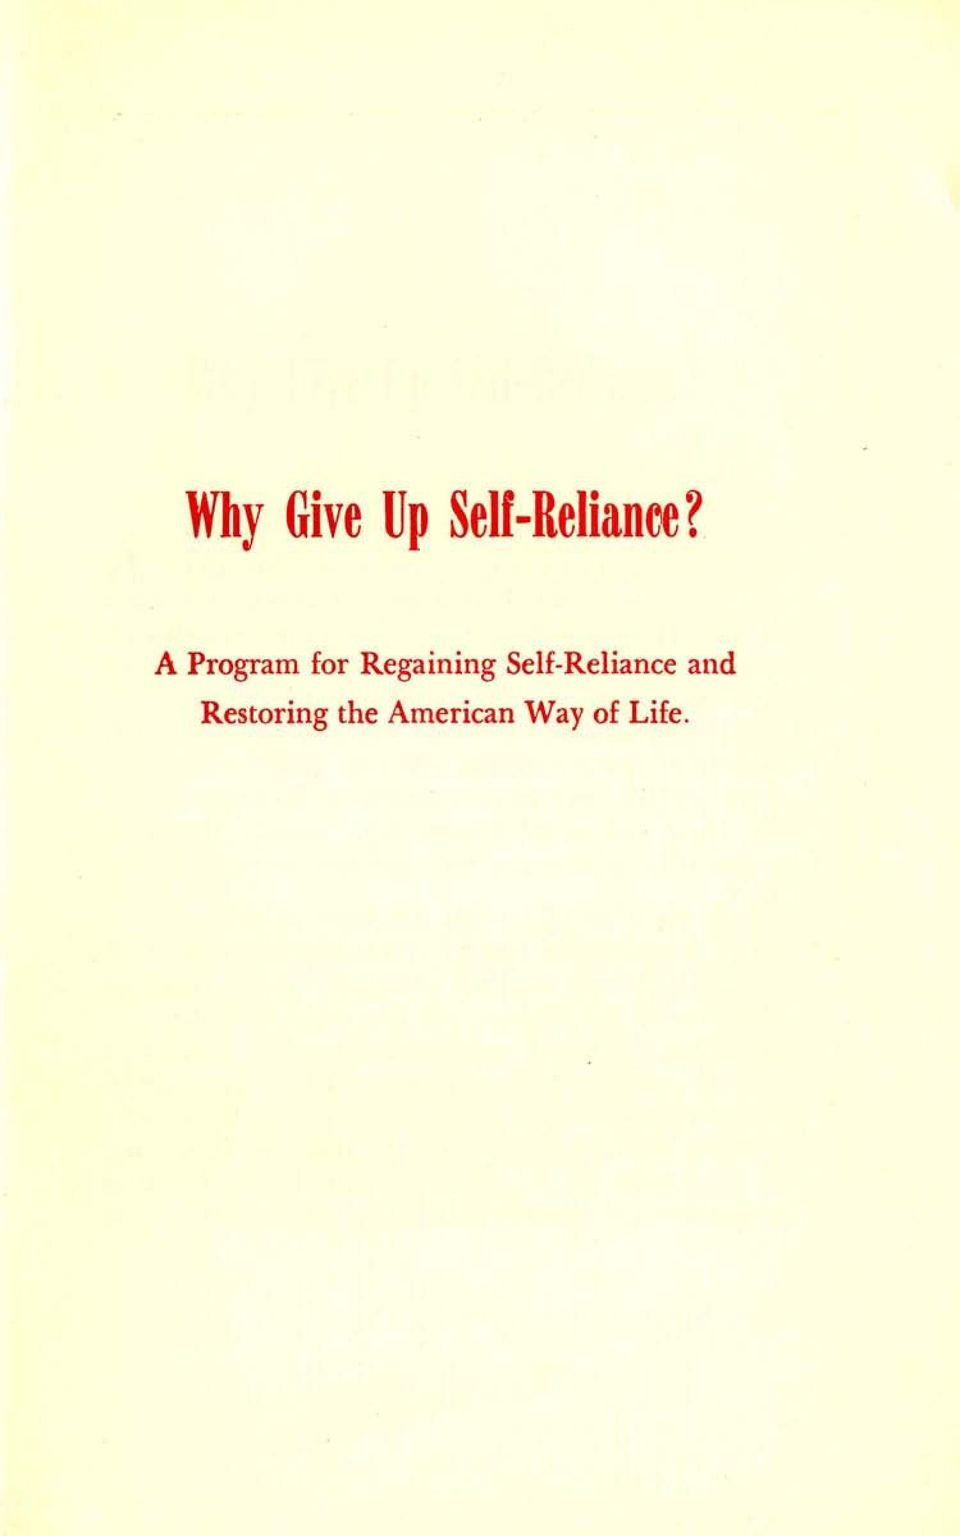 Self-Reliance and